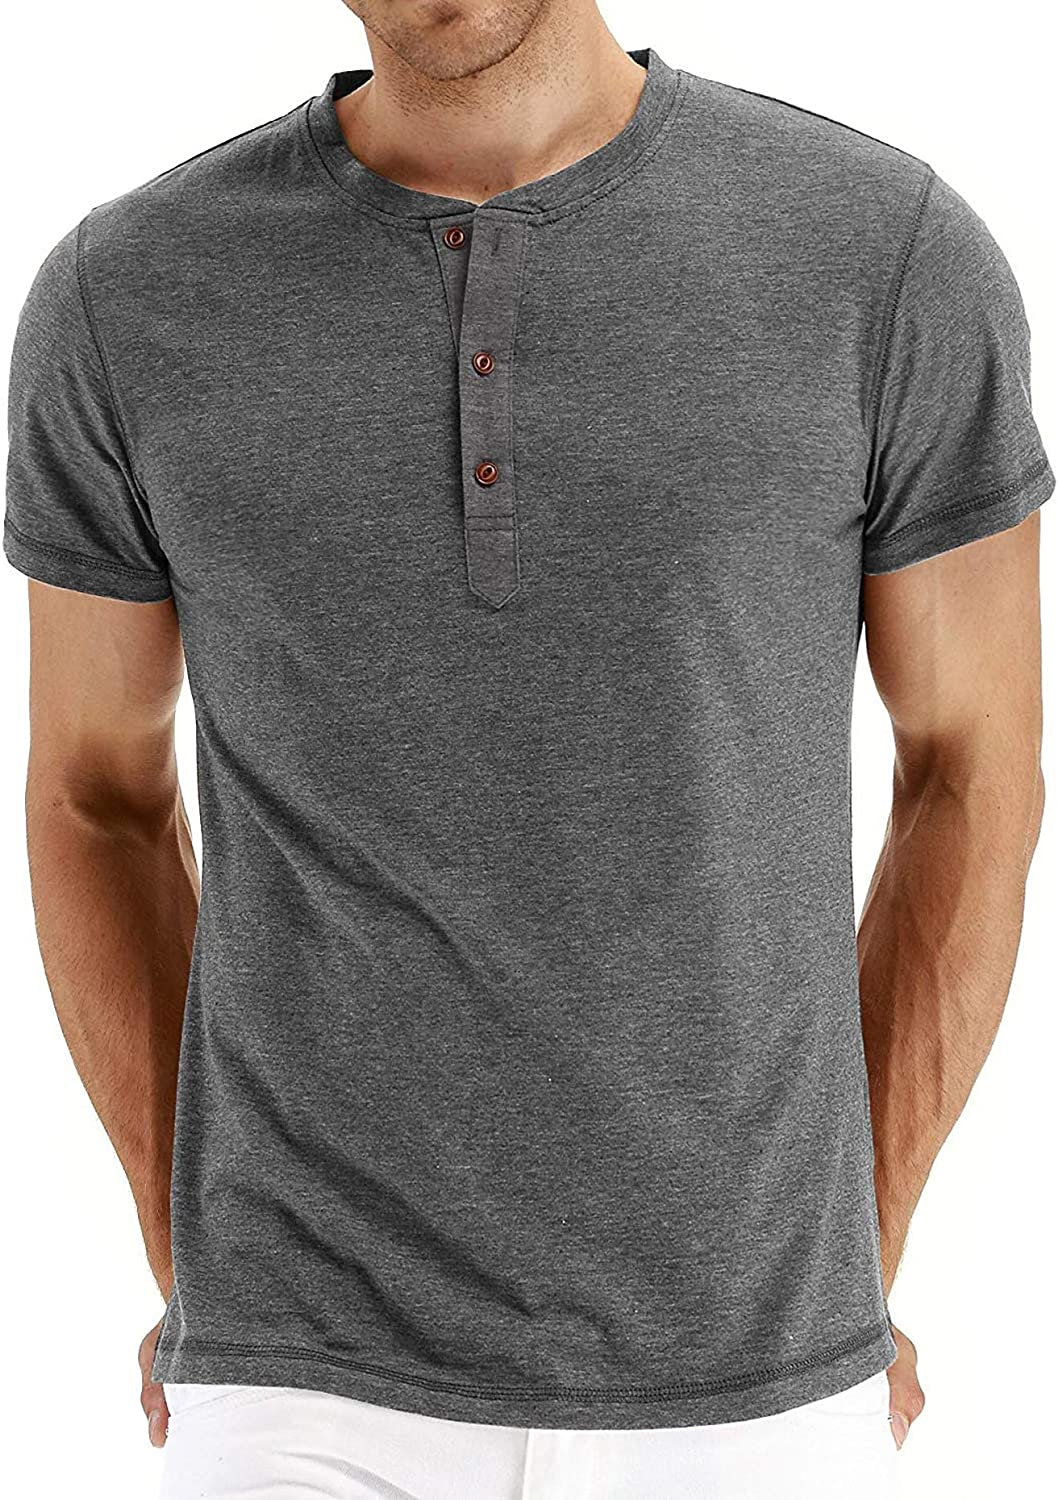 PEGENO Max 60% OFF Men's Fashion Casual Front Selling and selling Long Henl Sleeve Short Placket